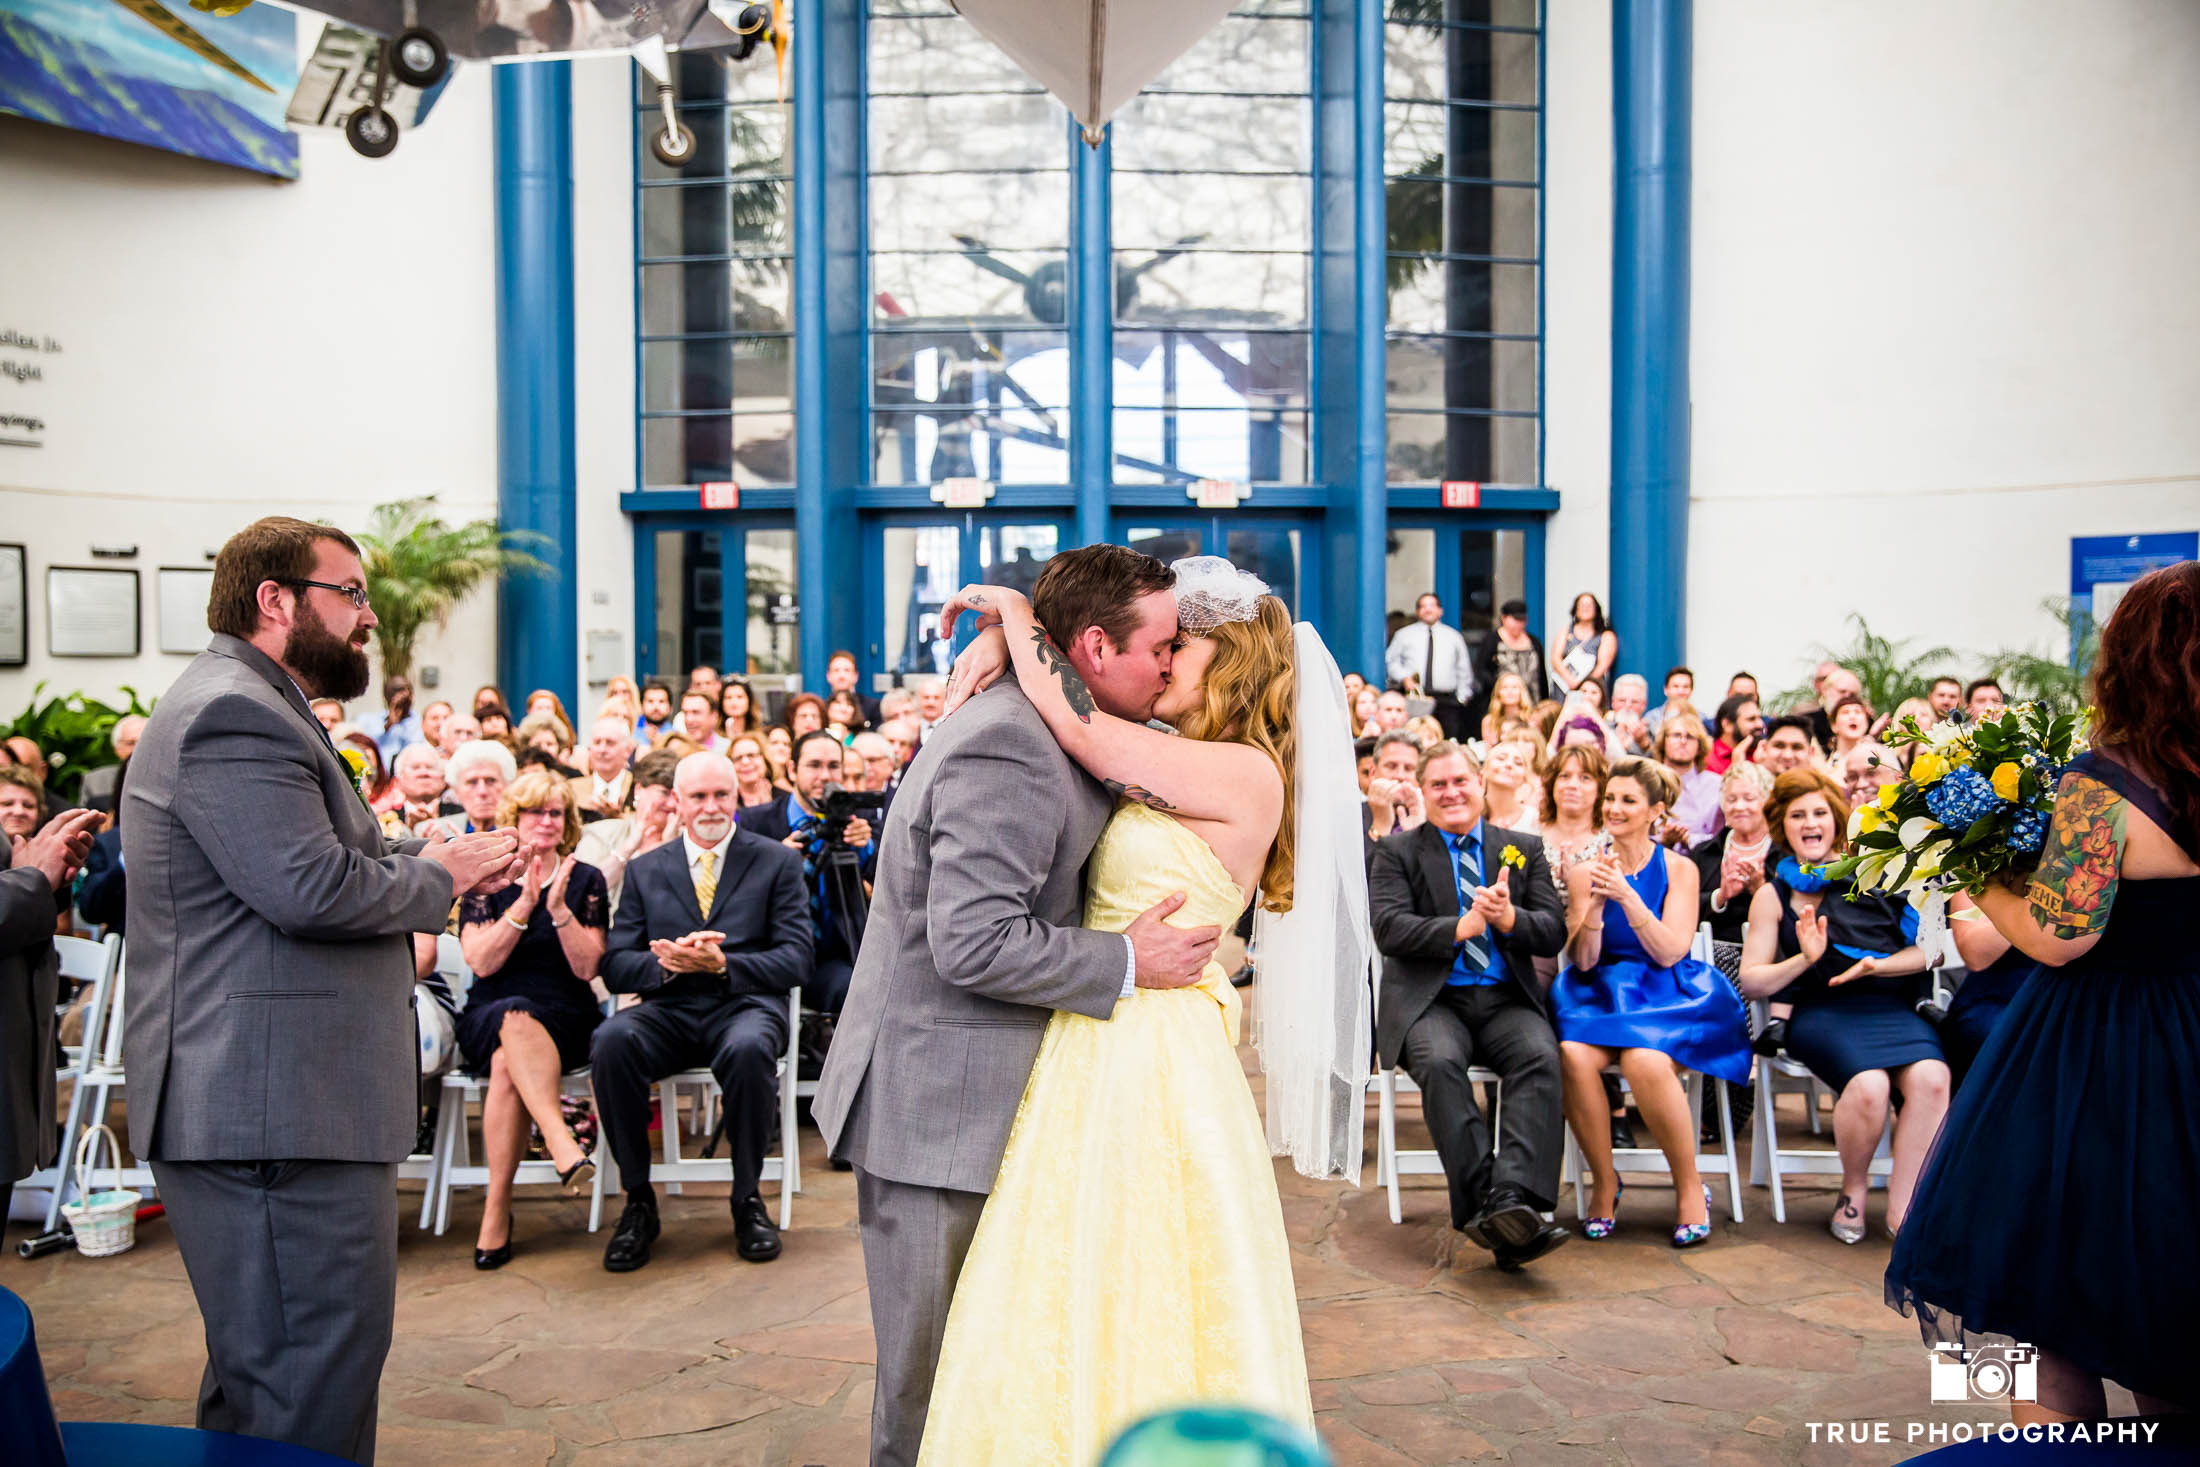 Bride and Groom's First Kiss during wedding ceremony in museum